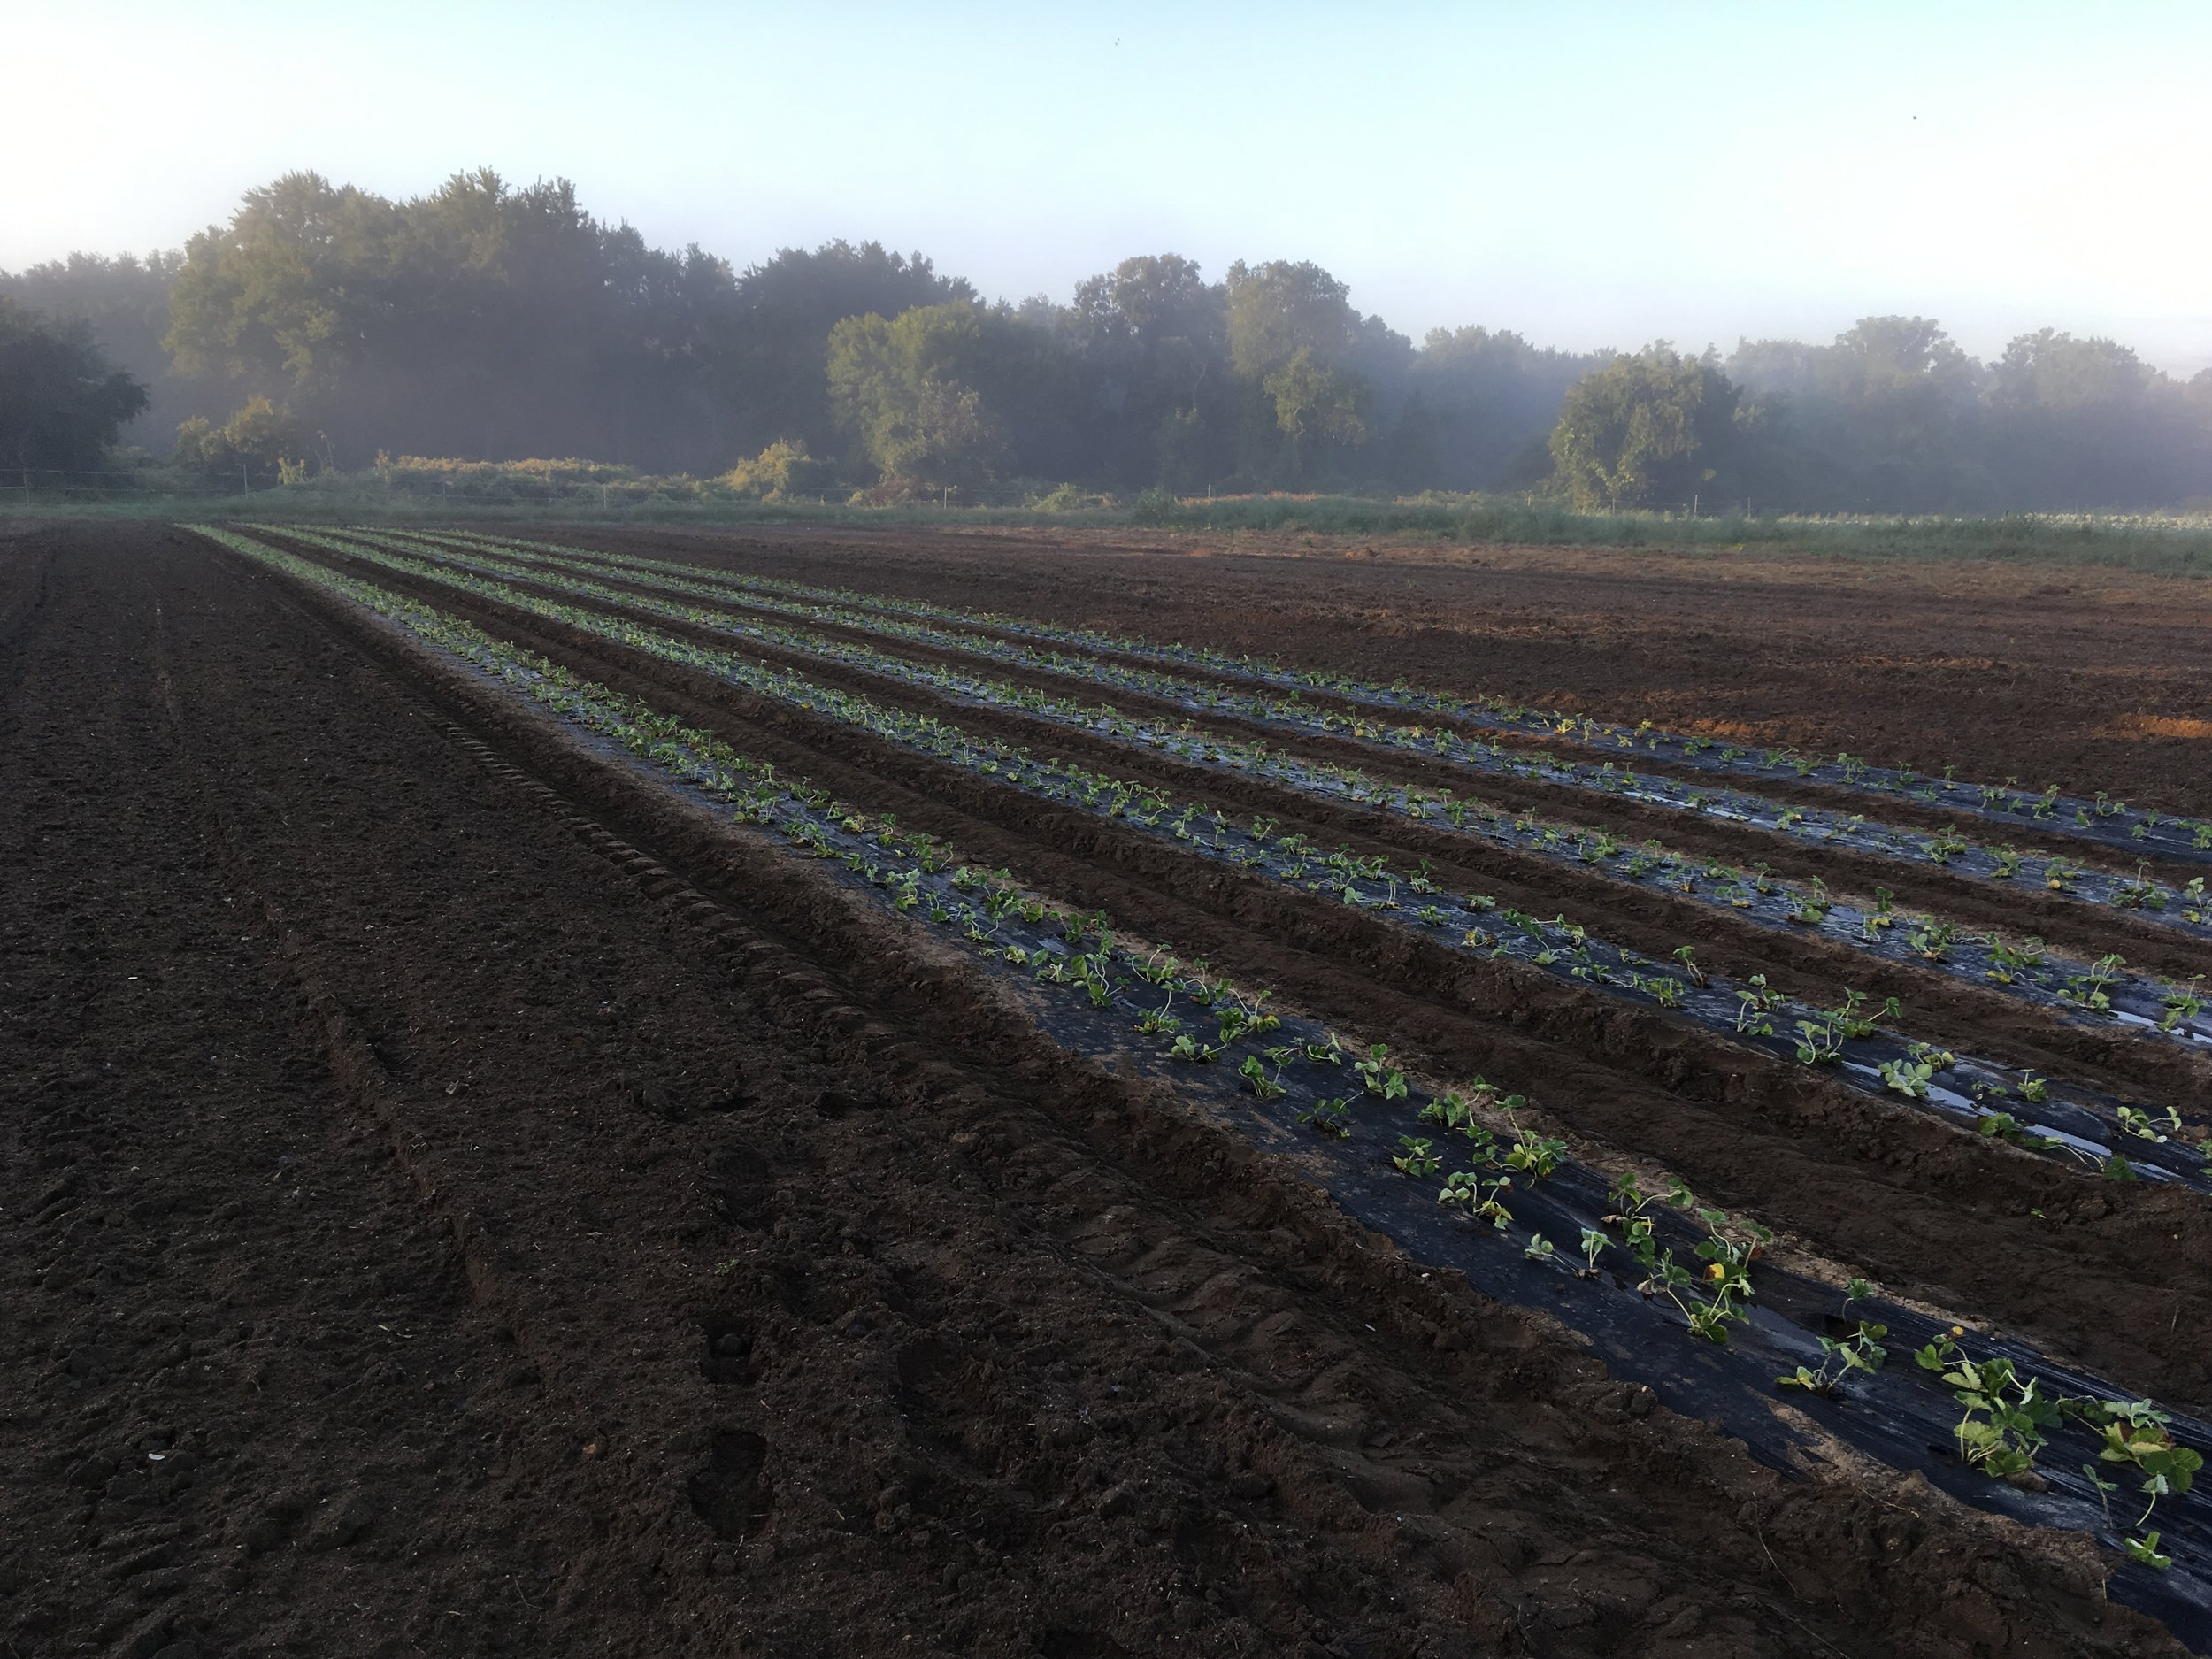 A view of our fall-planted strawberries and the last bits of the Sunday morning fog.